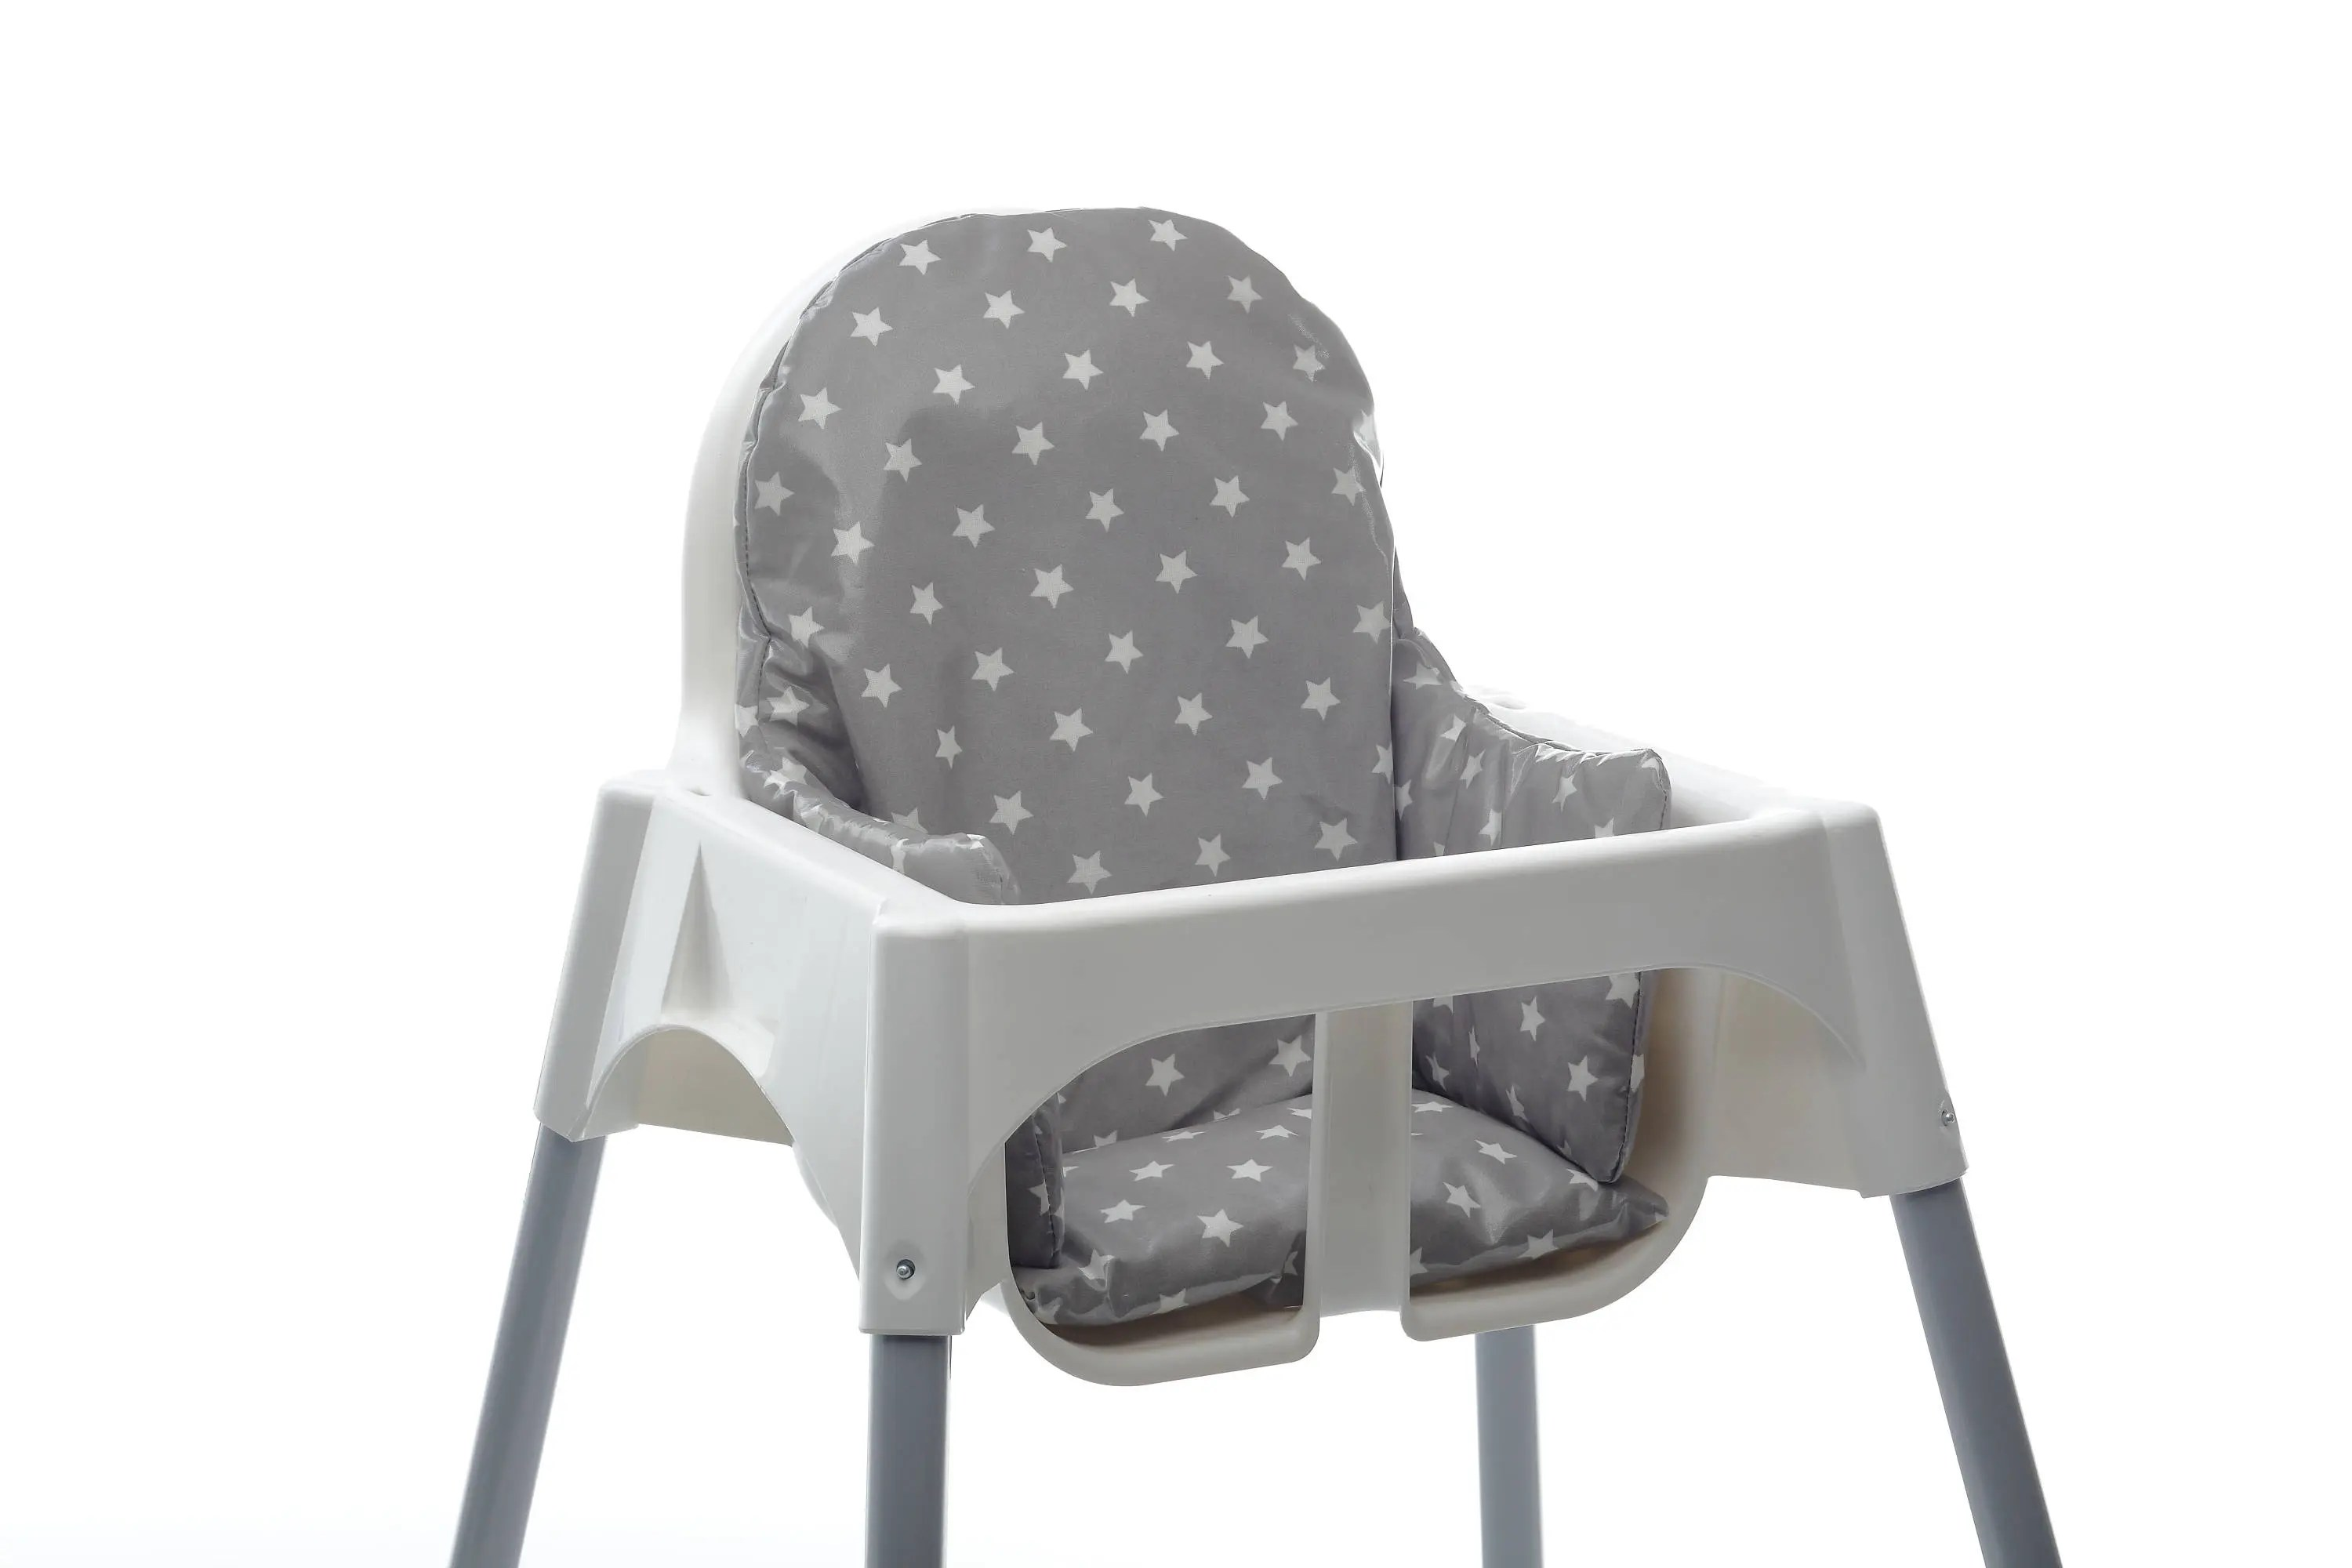 antilop high chair office customer reviews cushion insert super snug supportive and wipe